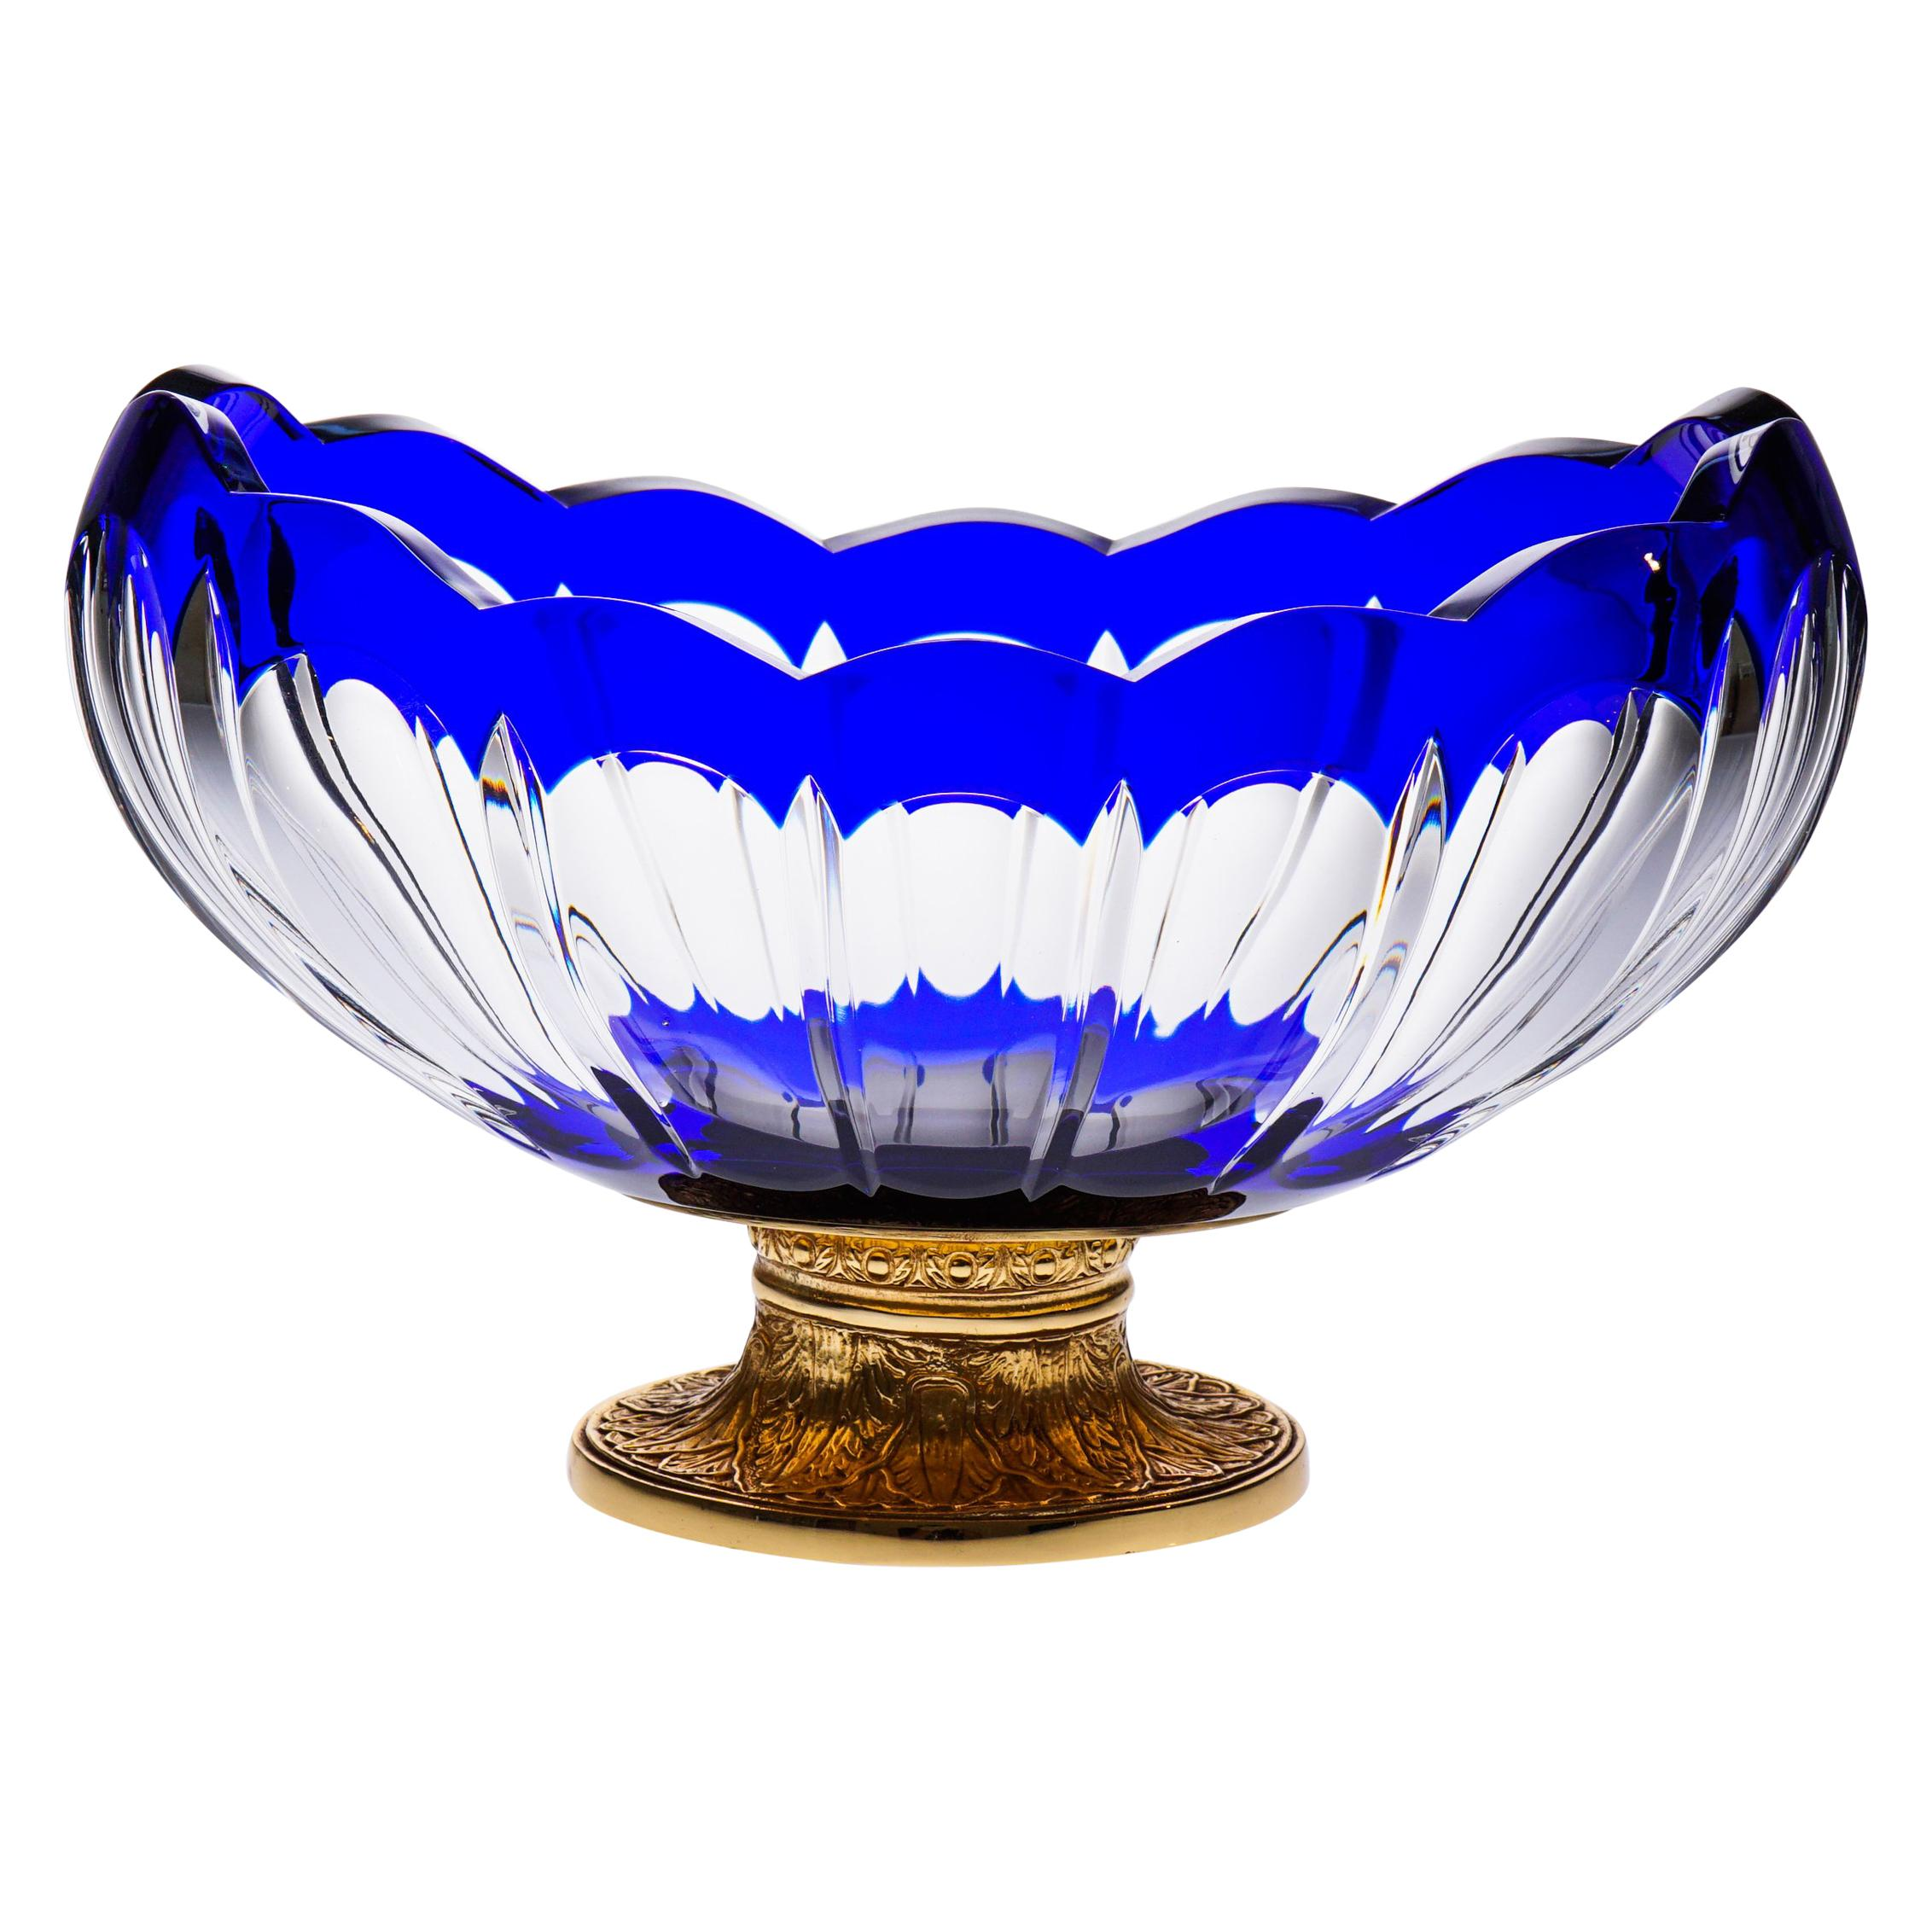 Blue Crystal Jardinière with Bronze Foot Covered 22-Carat Gold